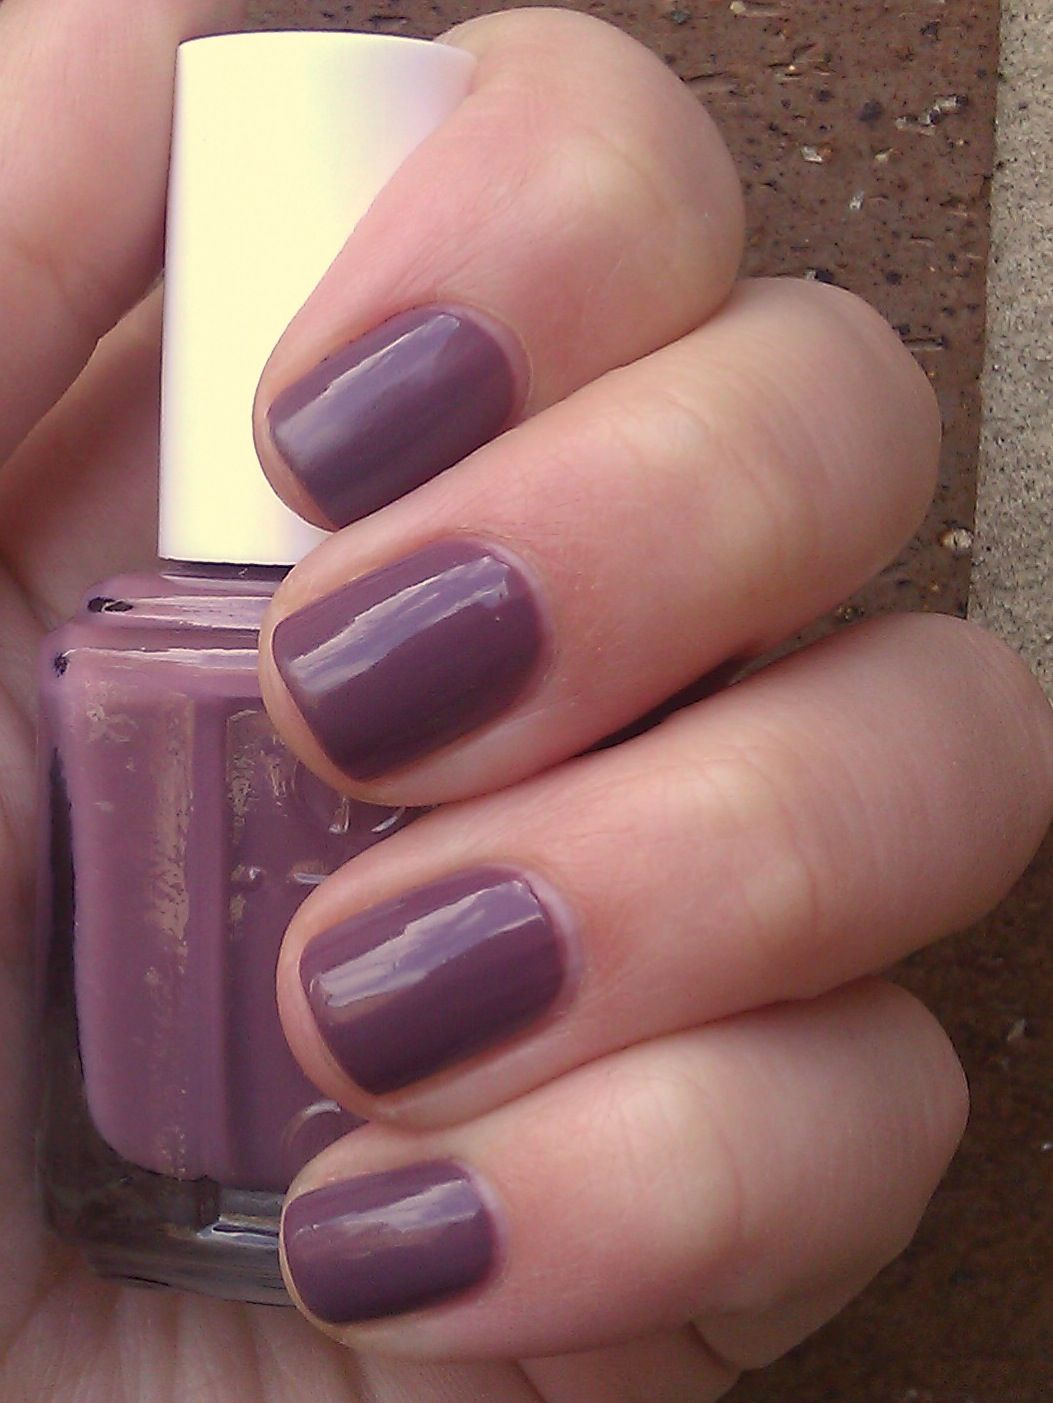 Essie - Island Hopping | Products I Love Beauty Edition | Pinterest ...